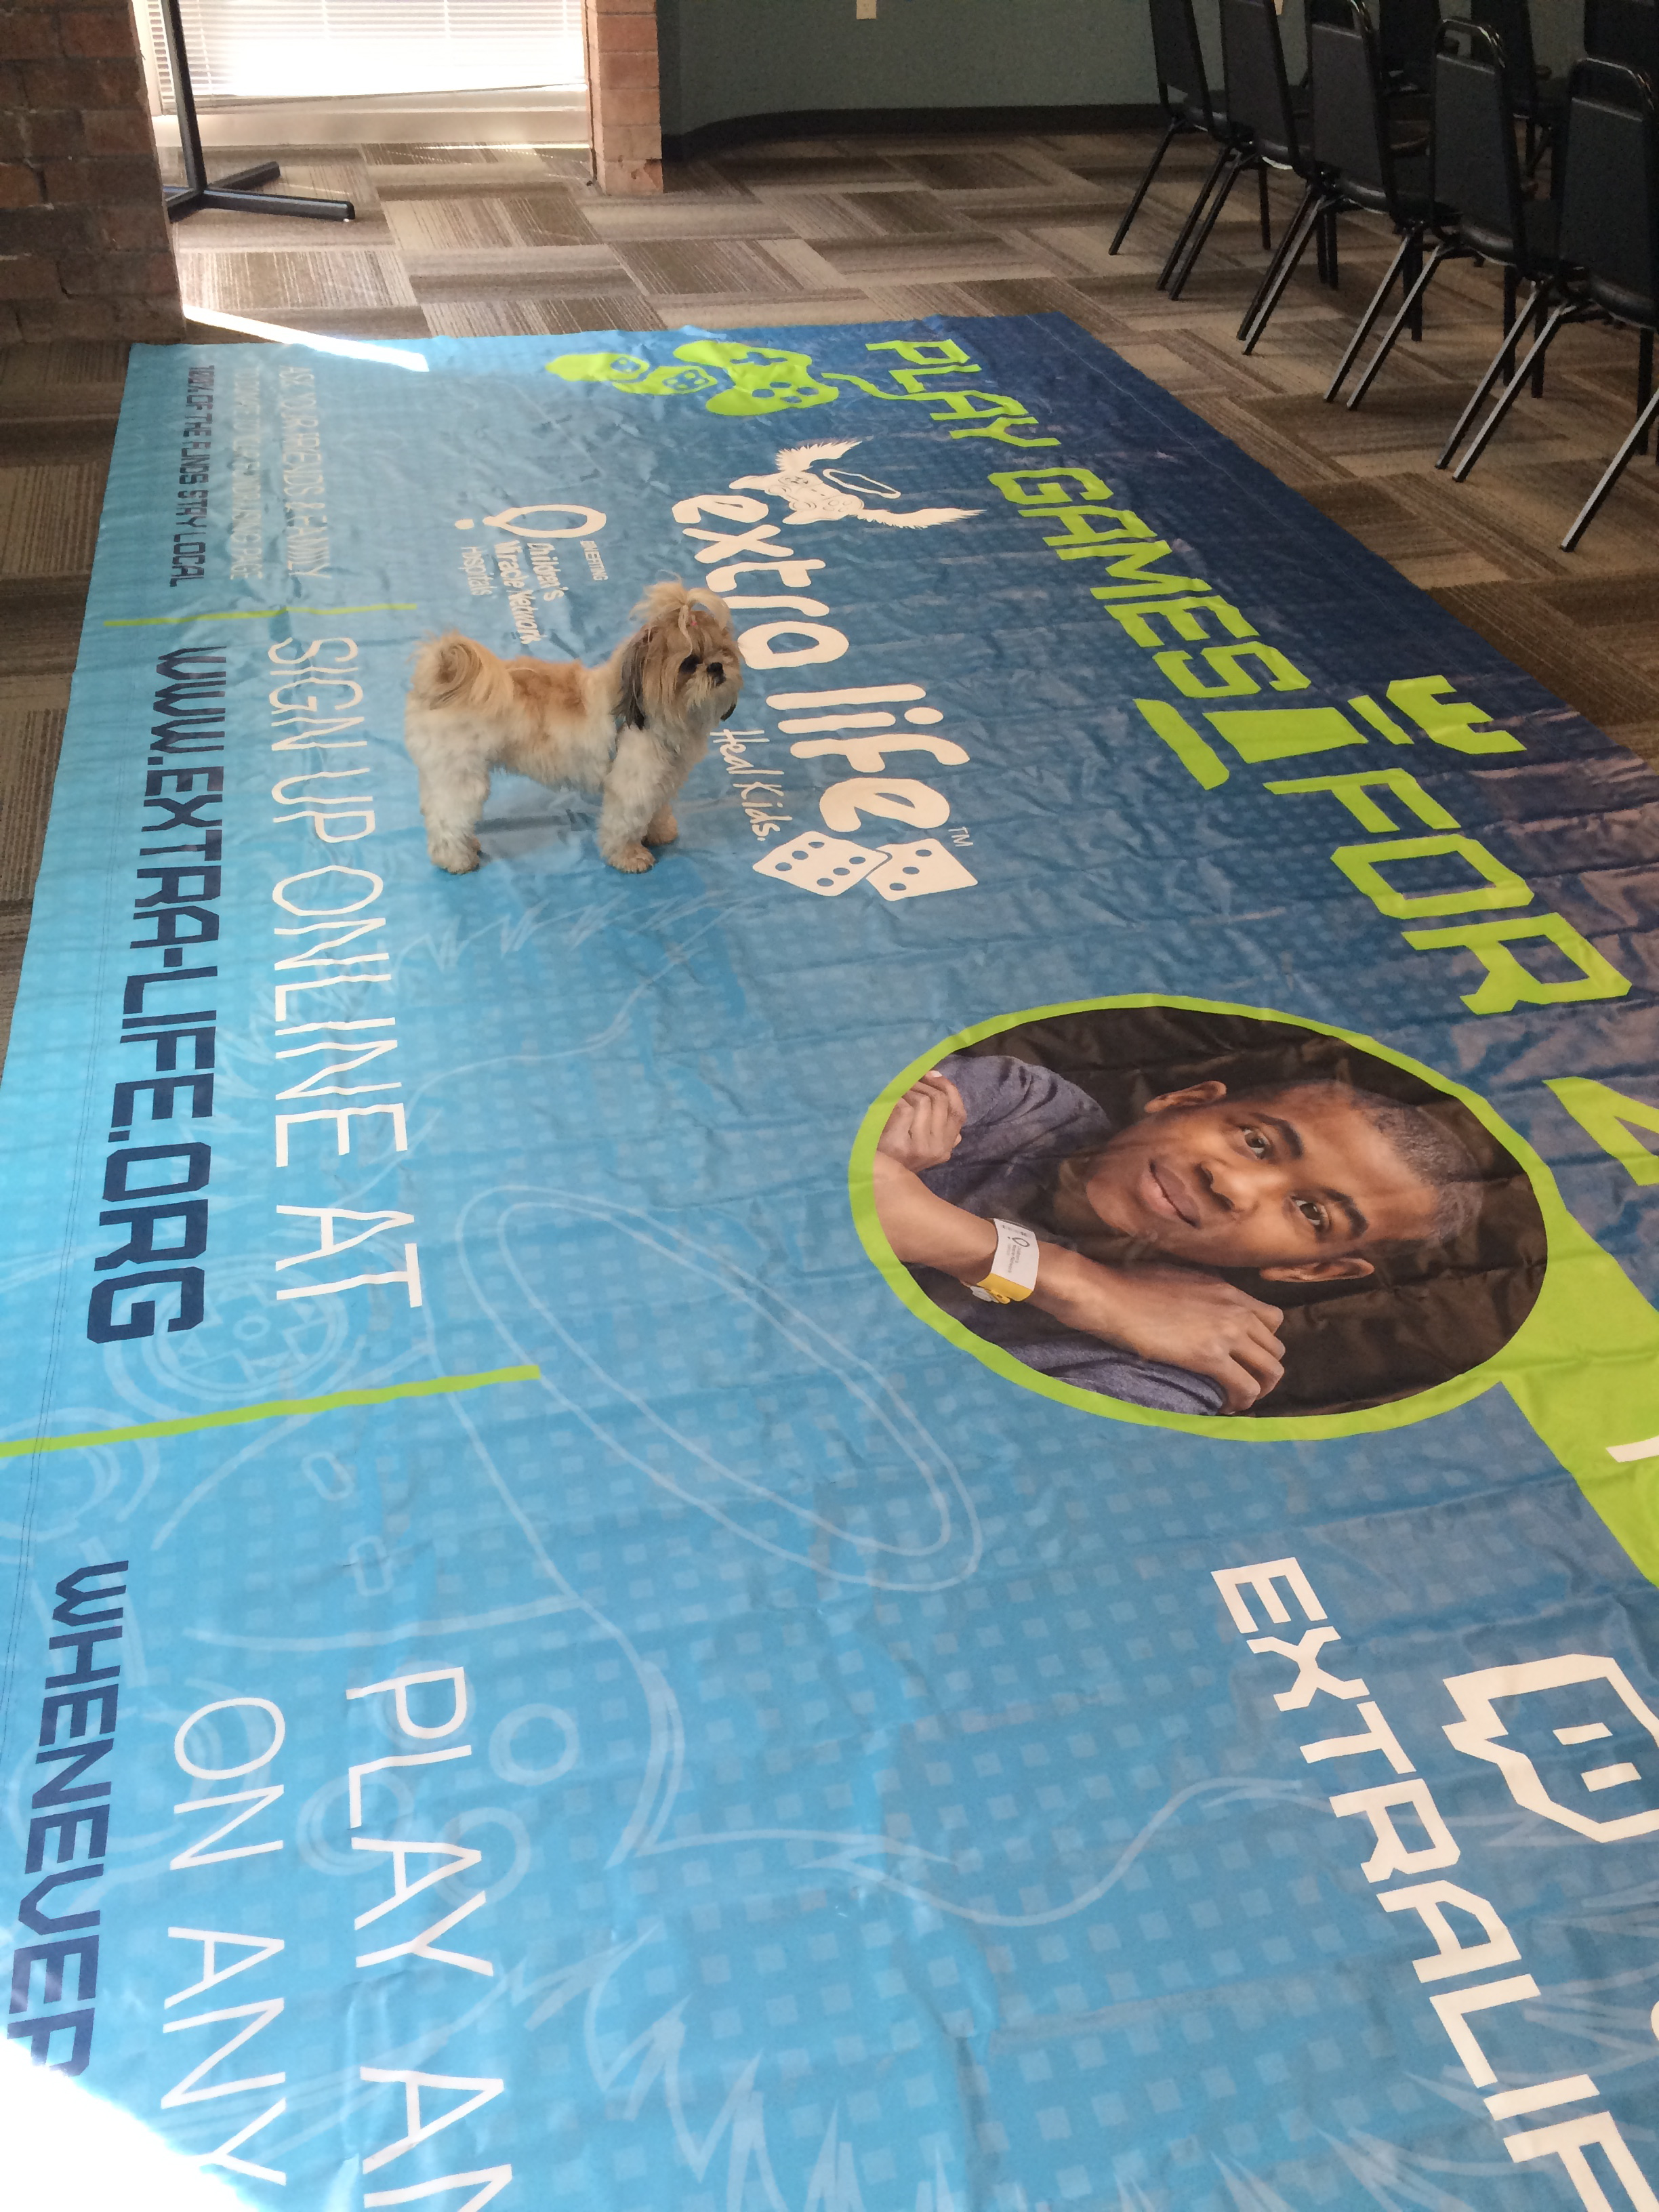 Bring your dog to work day! August 27, 2015476